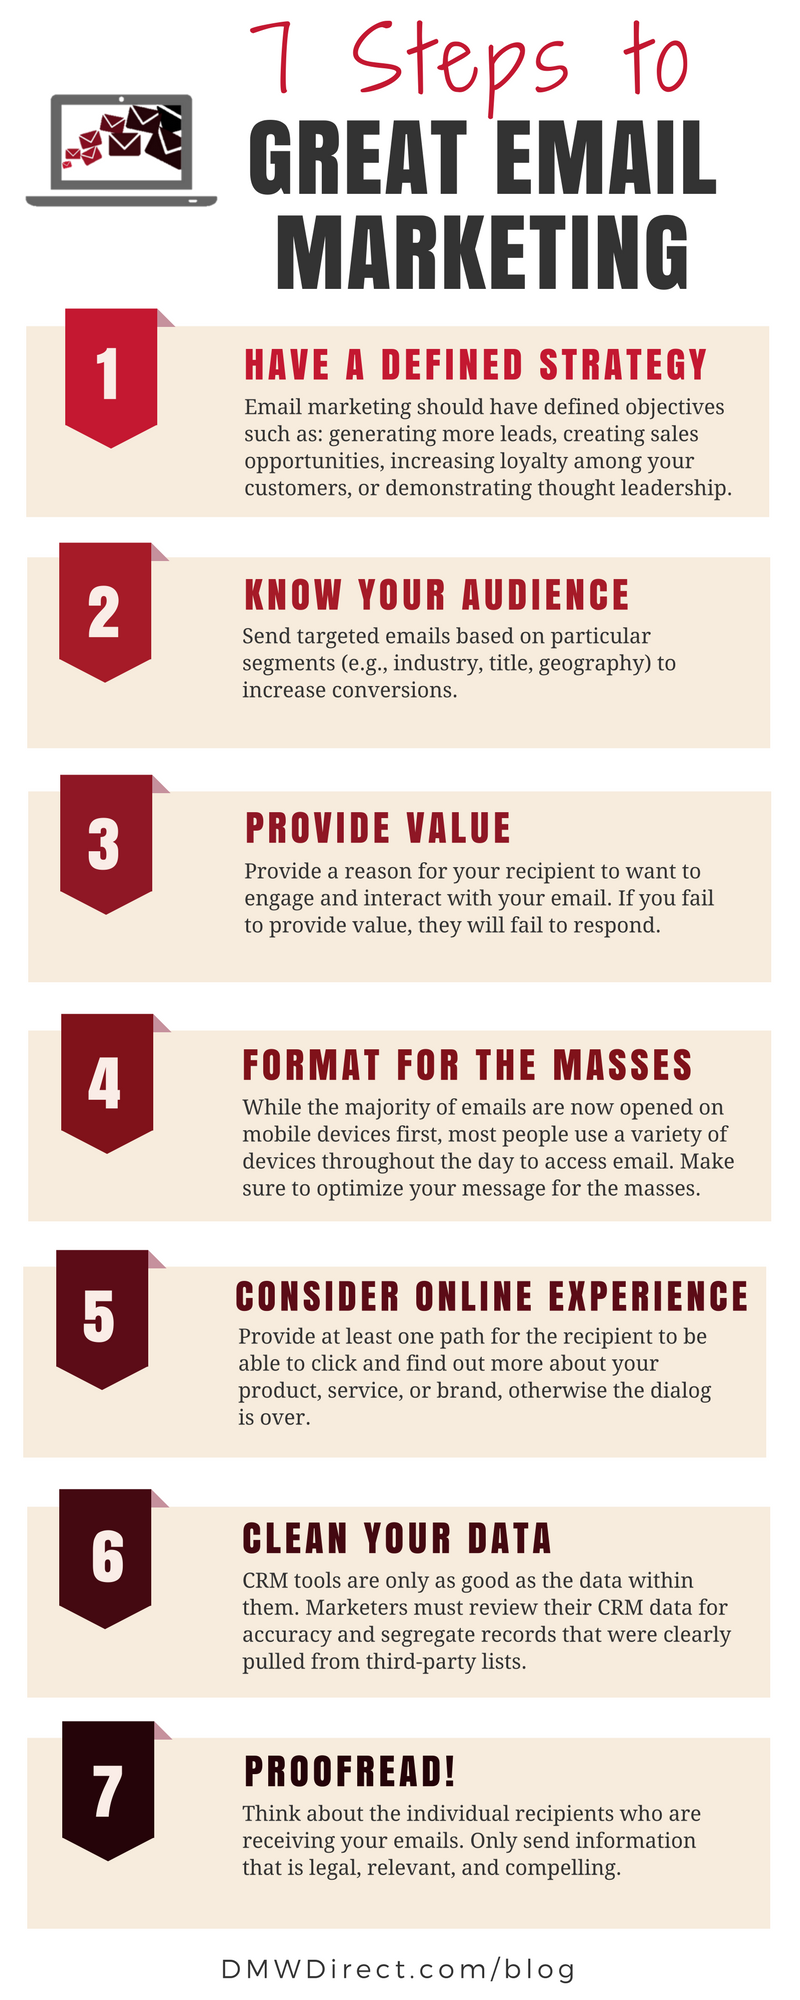 Infographic: 7 Steps to Great Email Marketing